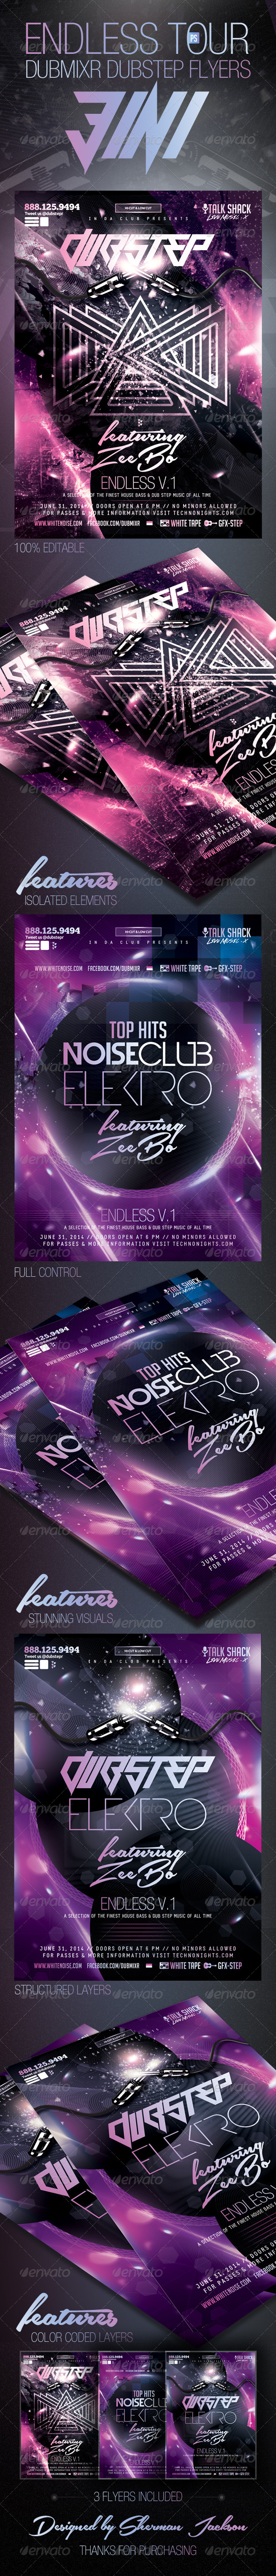 GraphicRiver Endless Tour Dubstep DubMixr Flyers 3 in 1 7649114